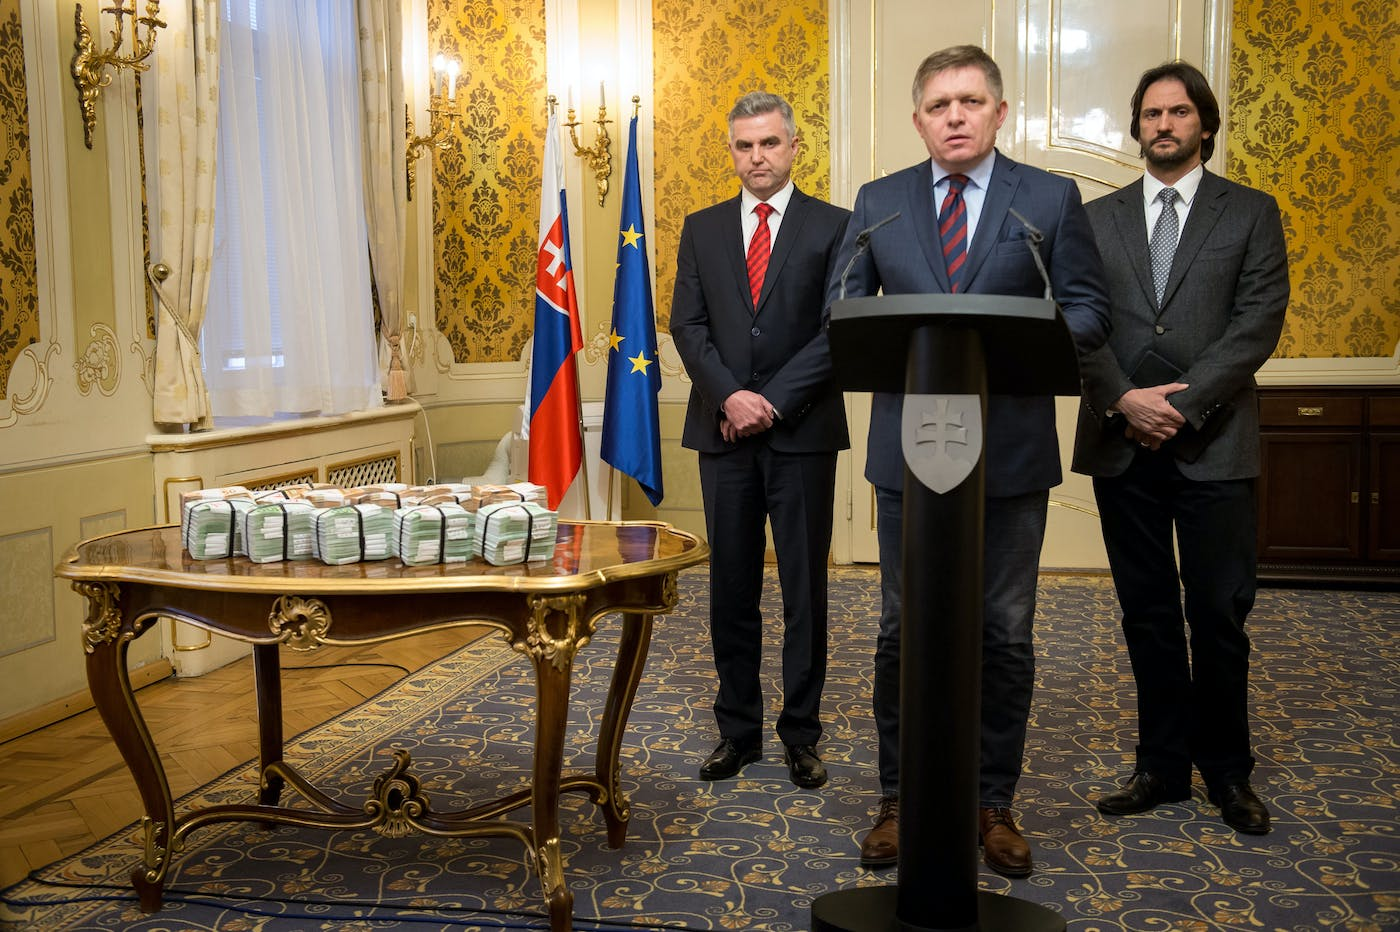 Slovak Prime Minister Robert Fico (C) is flanked by Slovak Police President Tibor Gaspar (L) and Slovak Interior Minister Robert Kalinak (R) as they stand next to bundles of Euro banknotes during a press conference on the murder case of a leading journalist who investigated high-profile tax fraud on February 27, 2018 in Bratislava, Slovakia.<br /><br /><br /> The body of Jan Kuciak, a 27-year-old reporter for the aktuality.sk news portal owned by Axel Springer and Ringier, was on Sunday (February 25, 2018) discovered alongside that of his fiancee Martina Kusnirova at their home in Velka Maca, 65 kilometres (40 miles) east of the Slovak capital Bratislava. Prime Minister Robert Fico said his government was offering one million euros ($1.2 million) for information leading to the killers' capture. / AFP PHOTO / VLADIMIR SIMICEK        (Photo credit should read VLADIMIR SIMICEK/AFP/Getty Images)